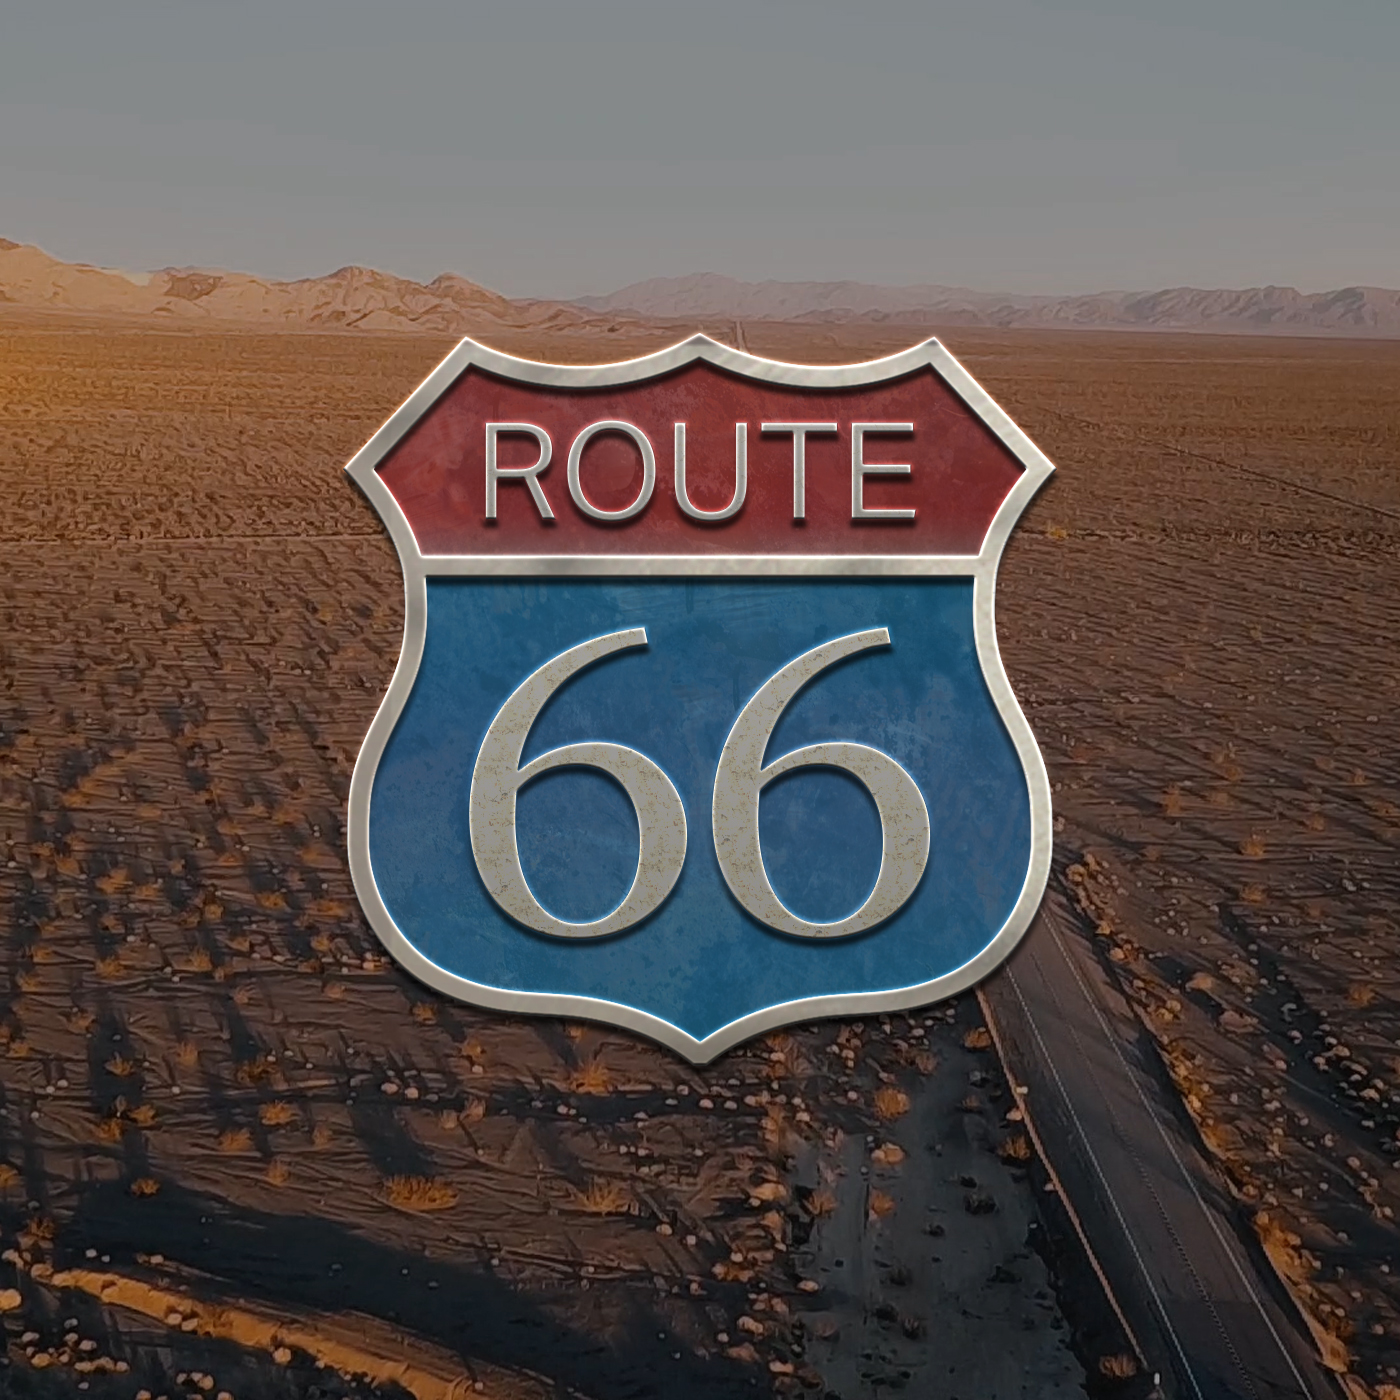 Route 66: What does freedom really mean to Americans?